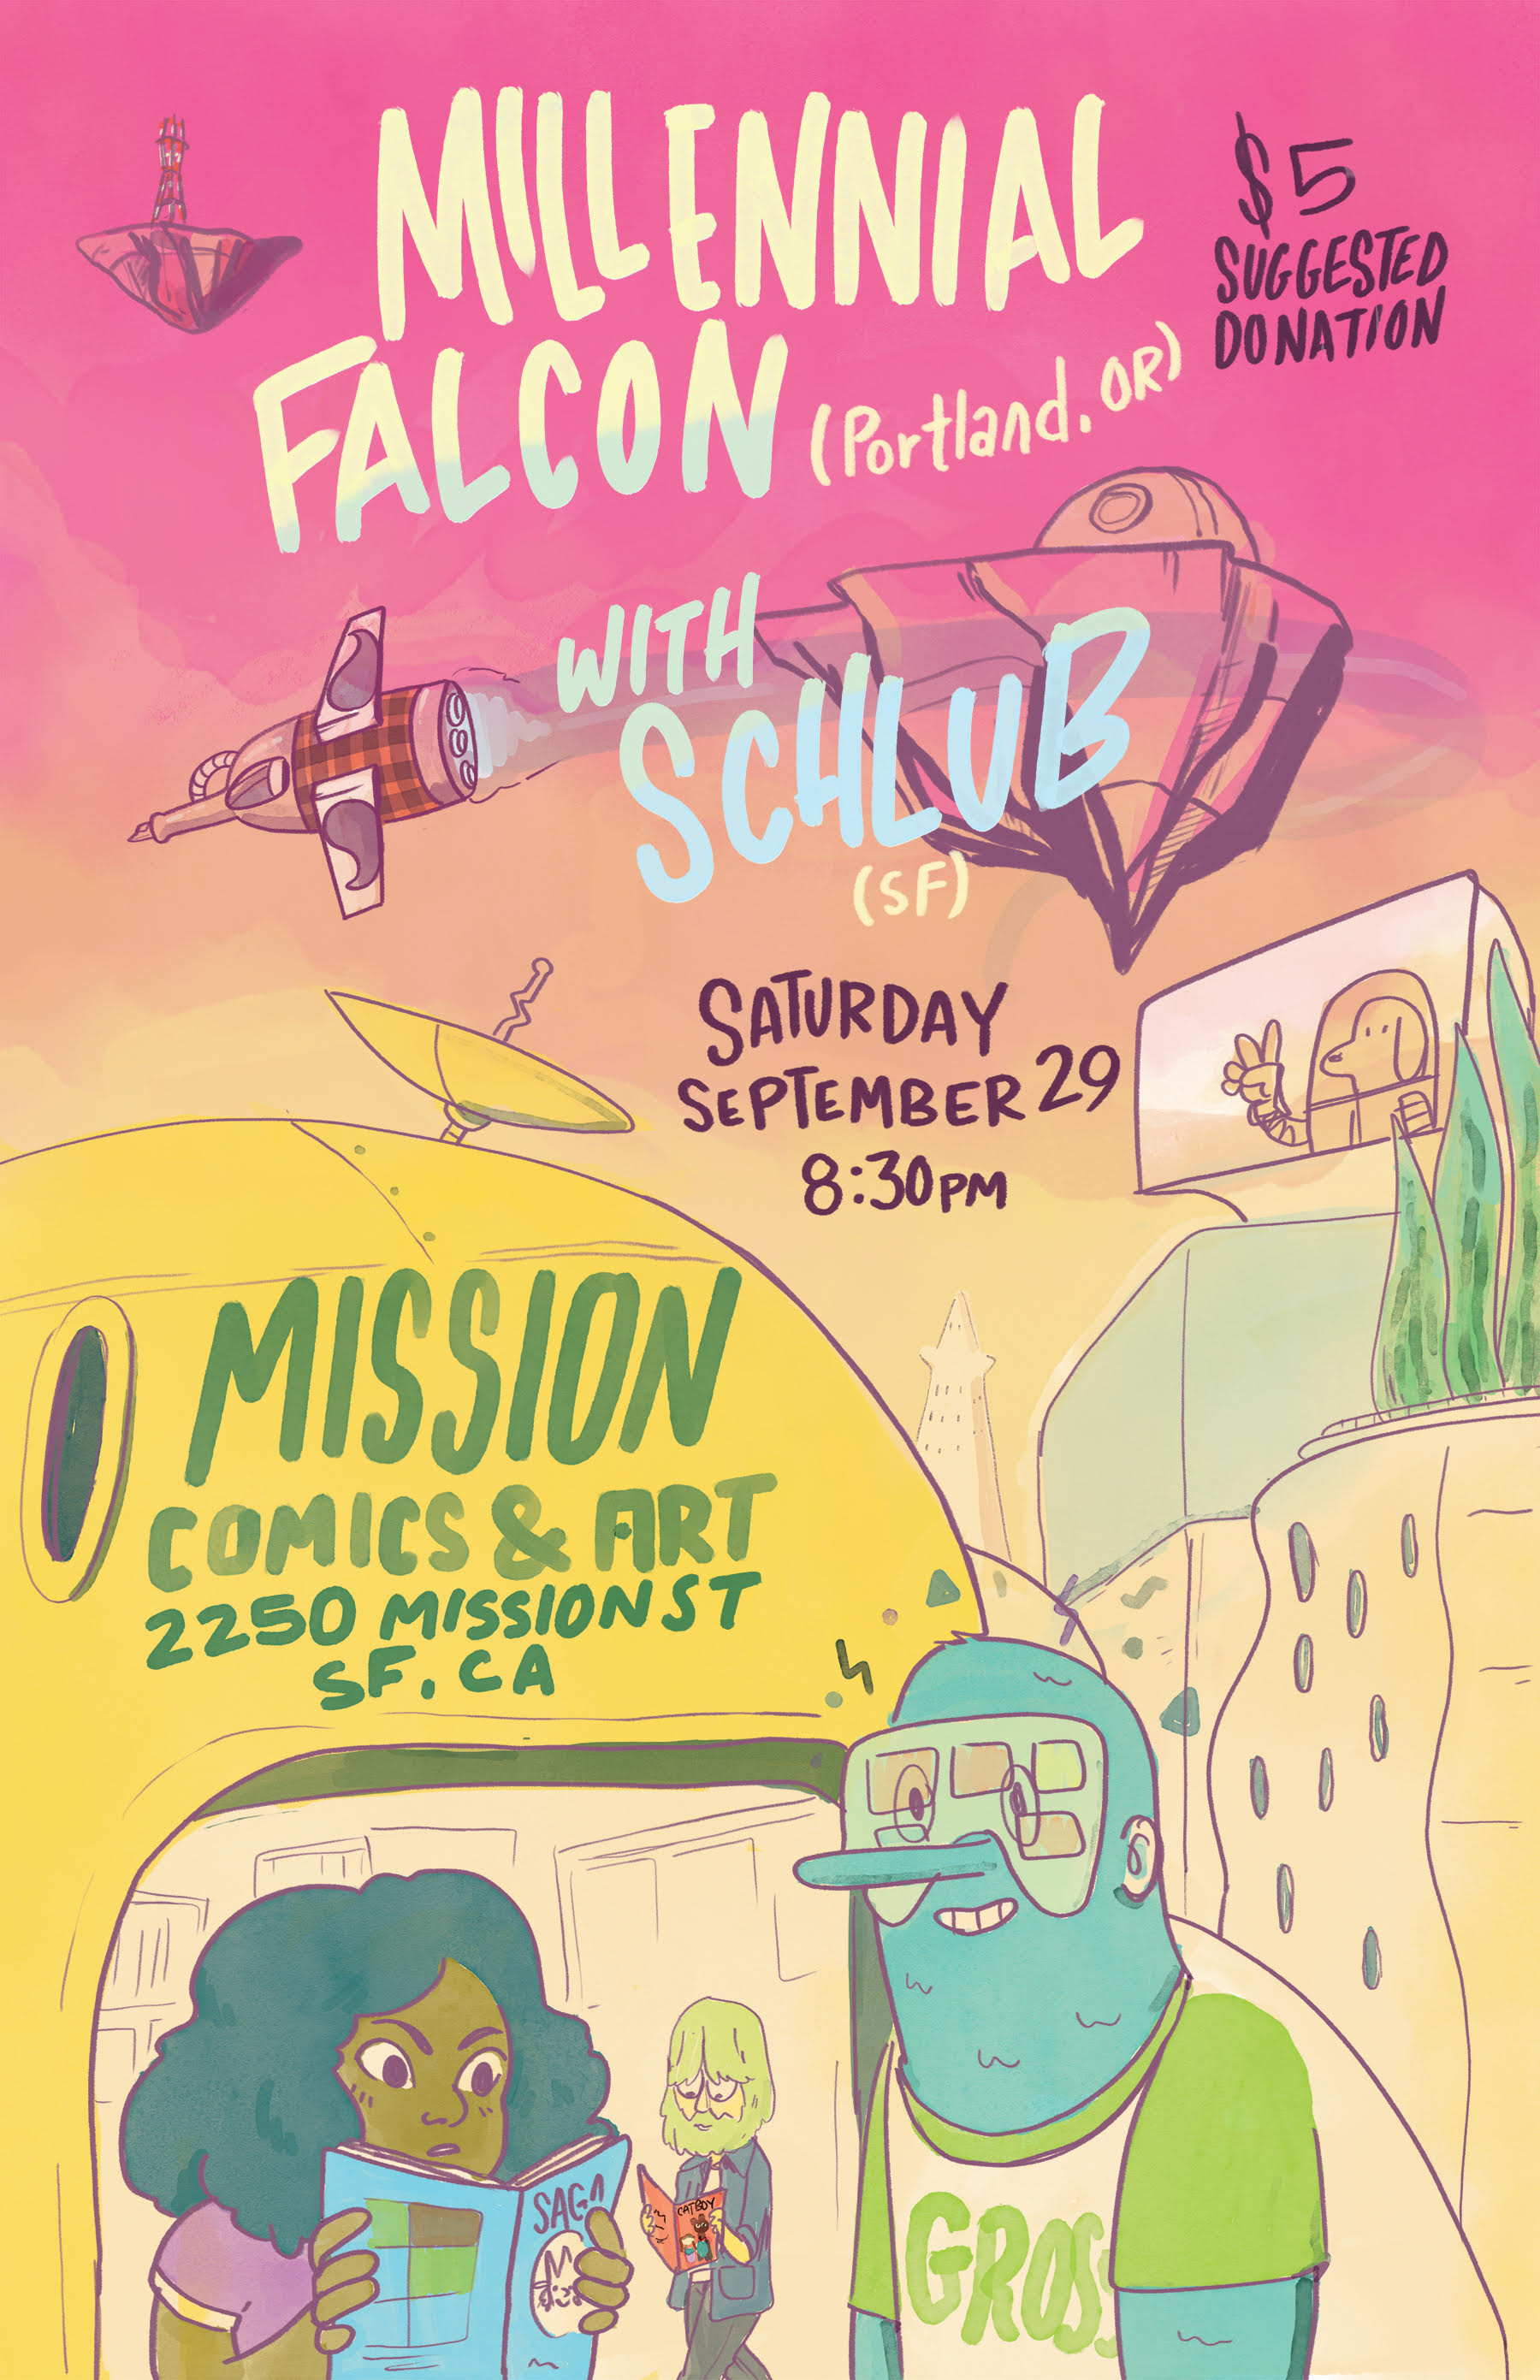 Show Poster for Millennial Falcon and Schlub